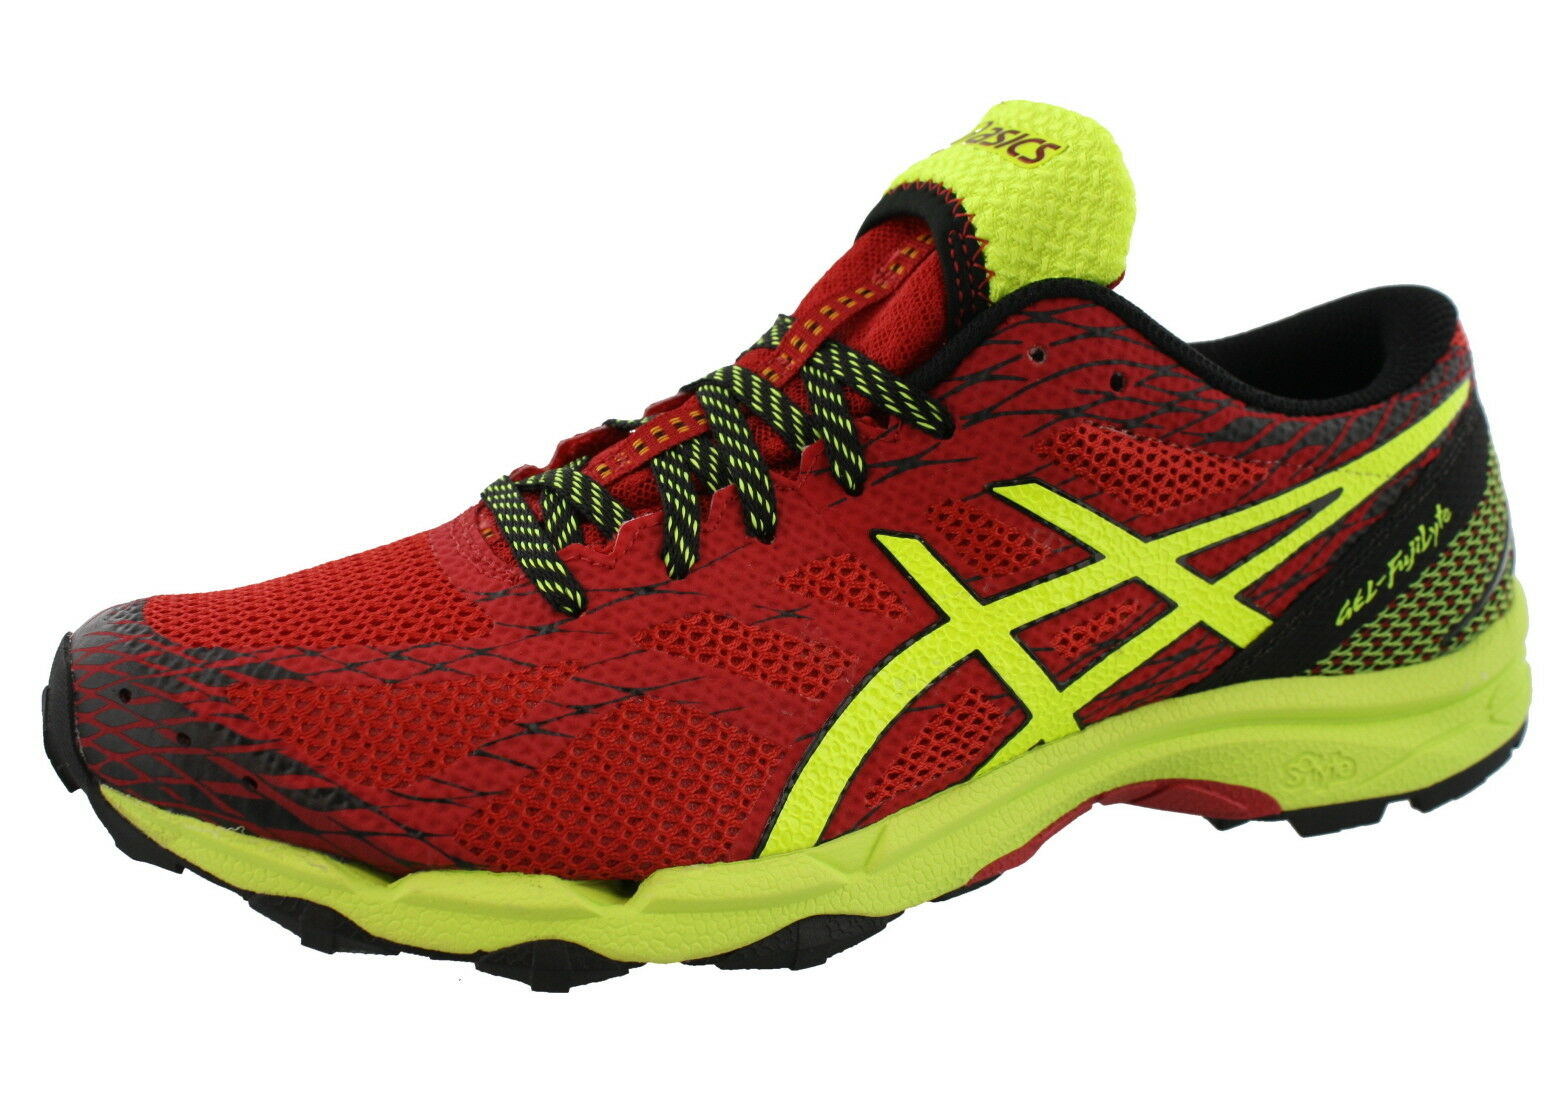 7601ad66ed97 ASICS Mens GEL Fuji Lyte Trail Running Shoes 9 D(m) US Racing Red ...